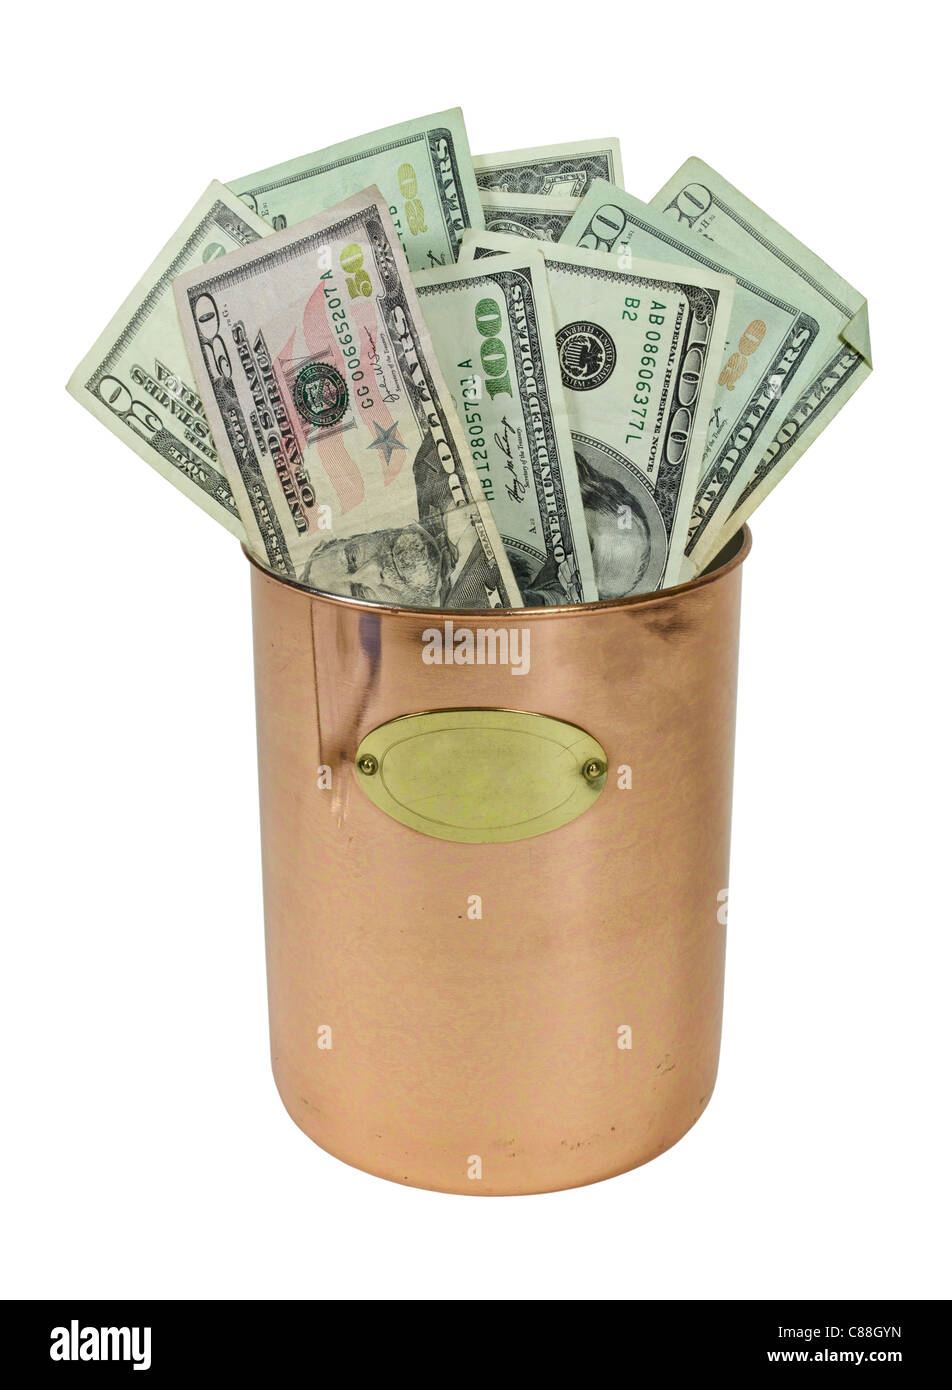 Money in the form of many large bills in a large copper pot - path included - Stock Image